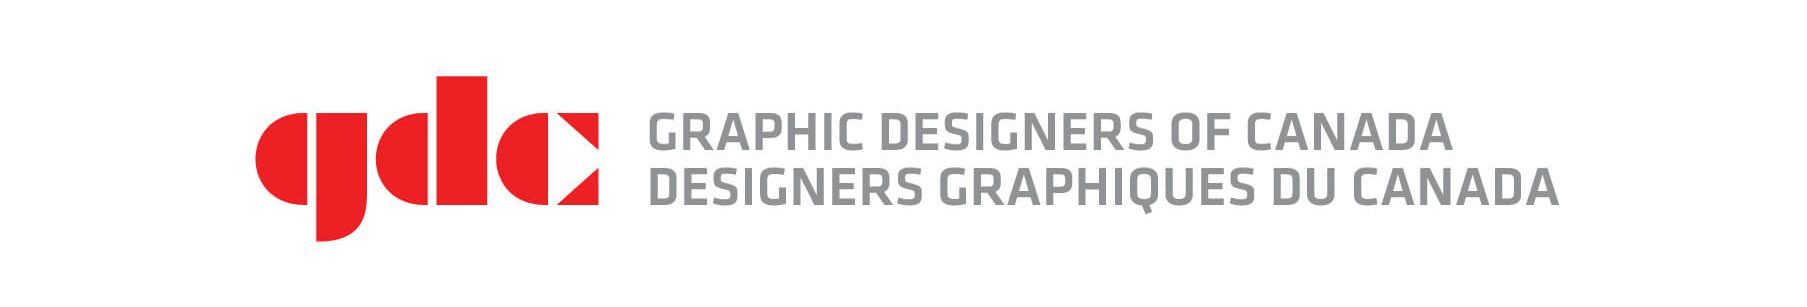 graphic designers of canada (gdc)